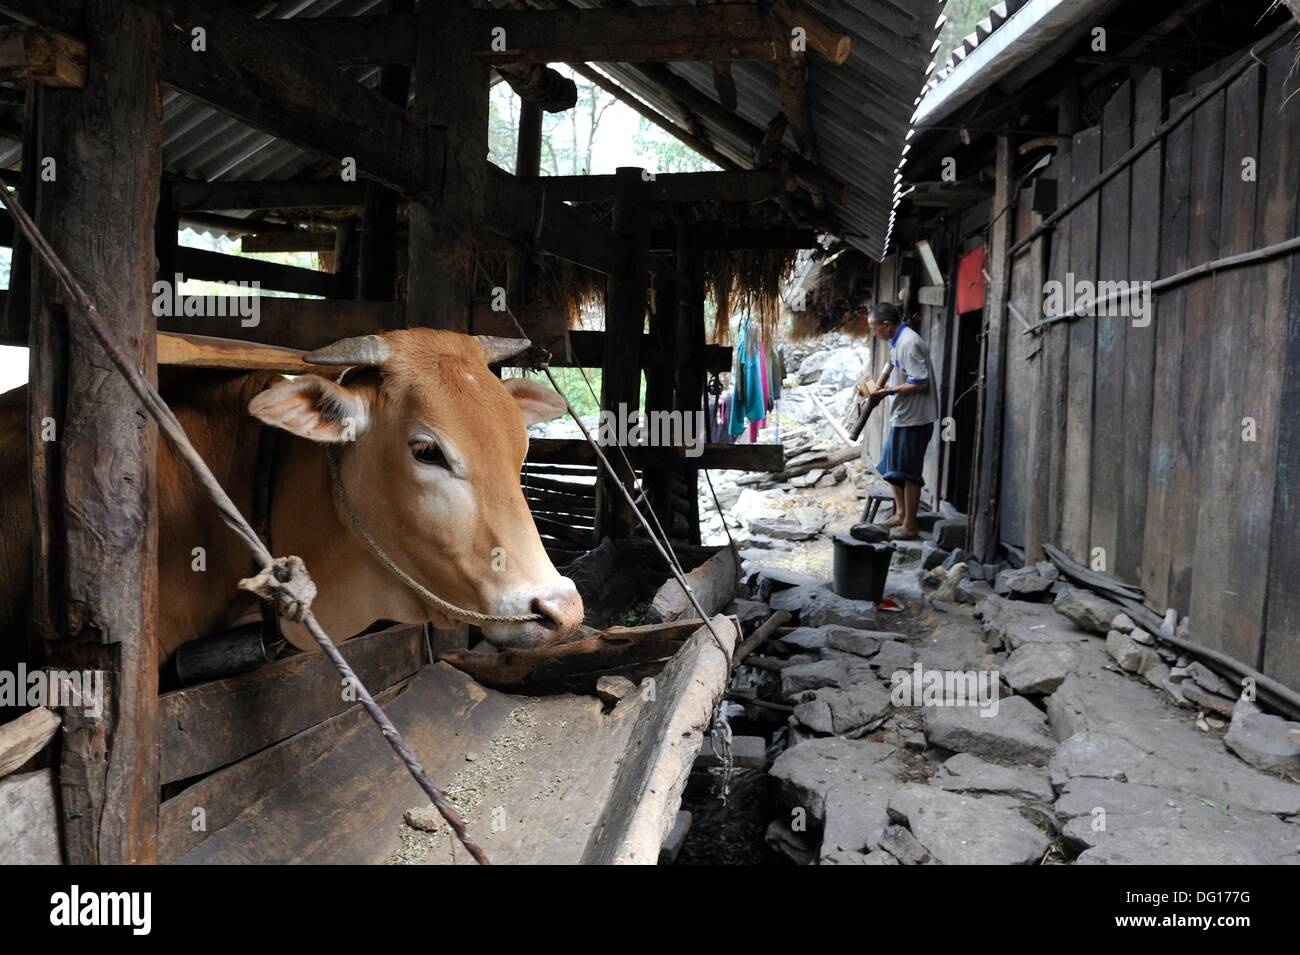 cow in cowshed,hamlet around Sa Phin,Dong Van plateau,Ha Giang province,northern Vietnam,southeast asia - Stock Image